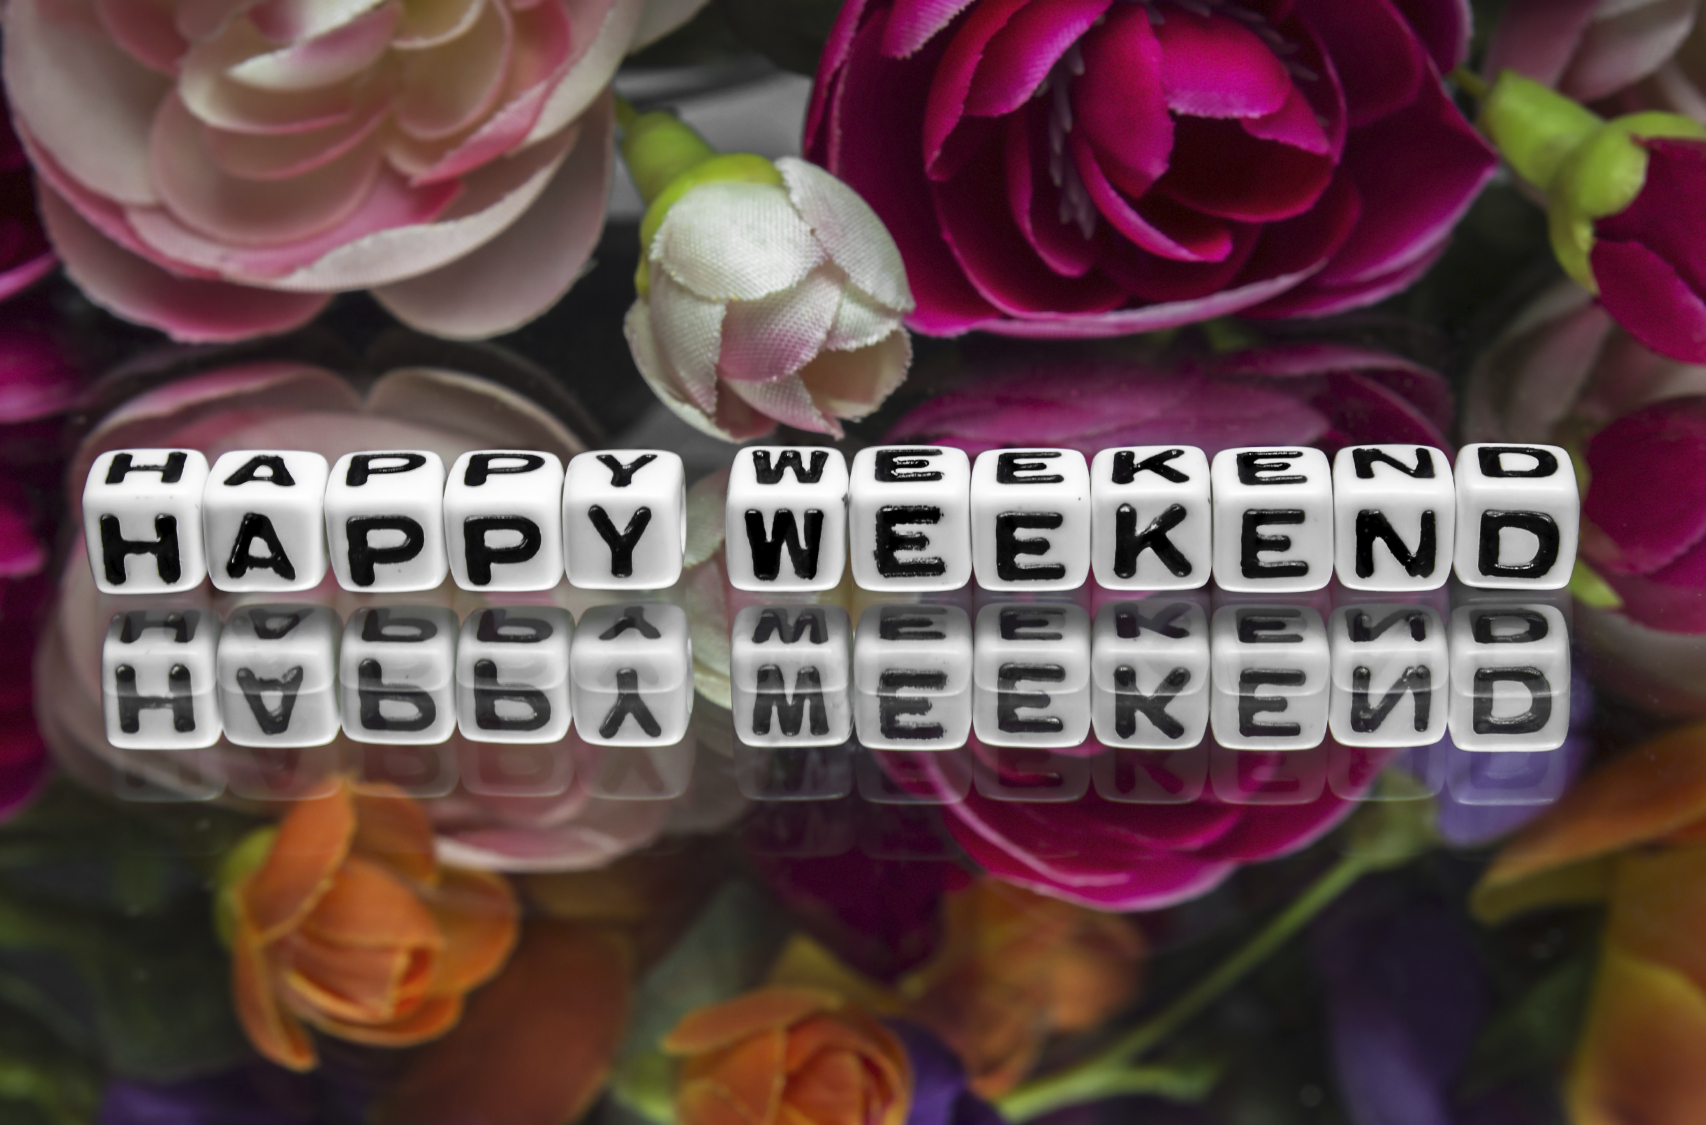 Happy weekend with flowers